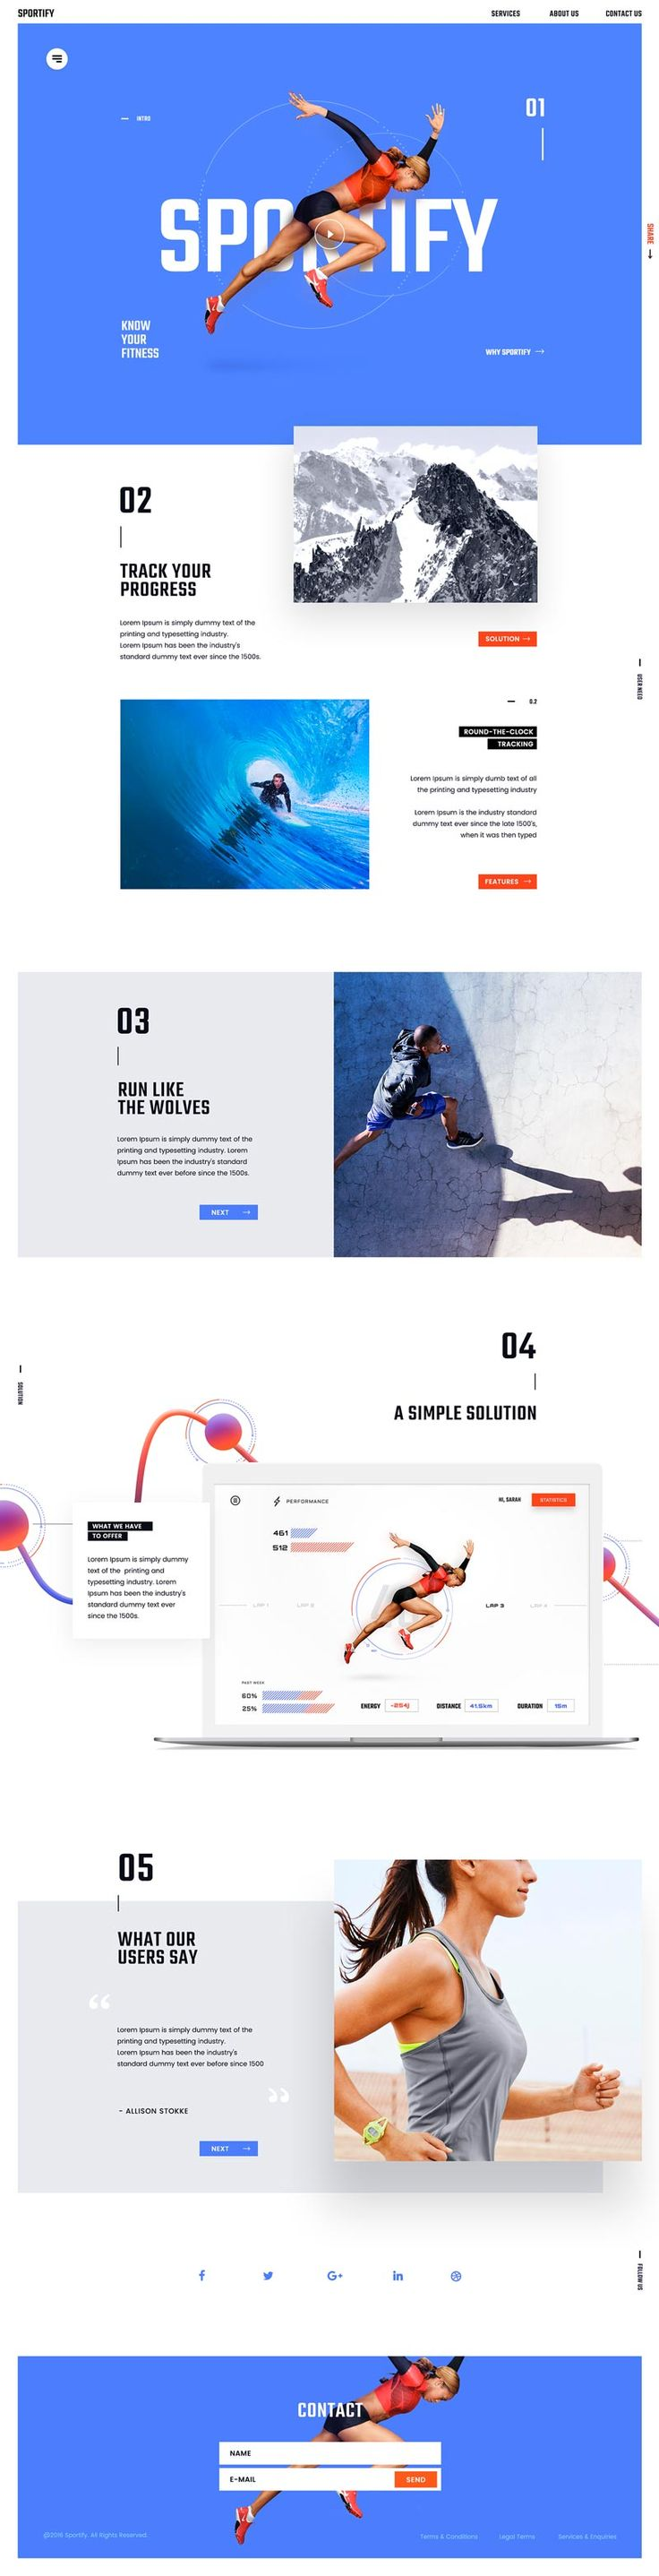 Sportify Landing Page Website - Behance #ui #ux #userexperience #website #webdesign #design